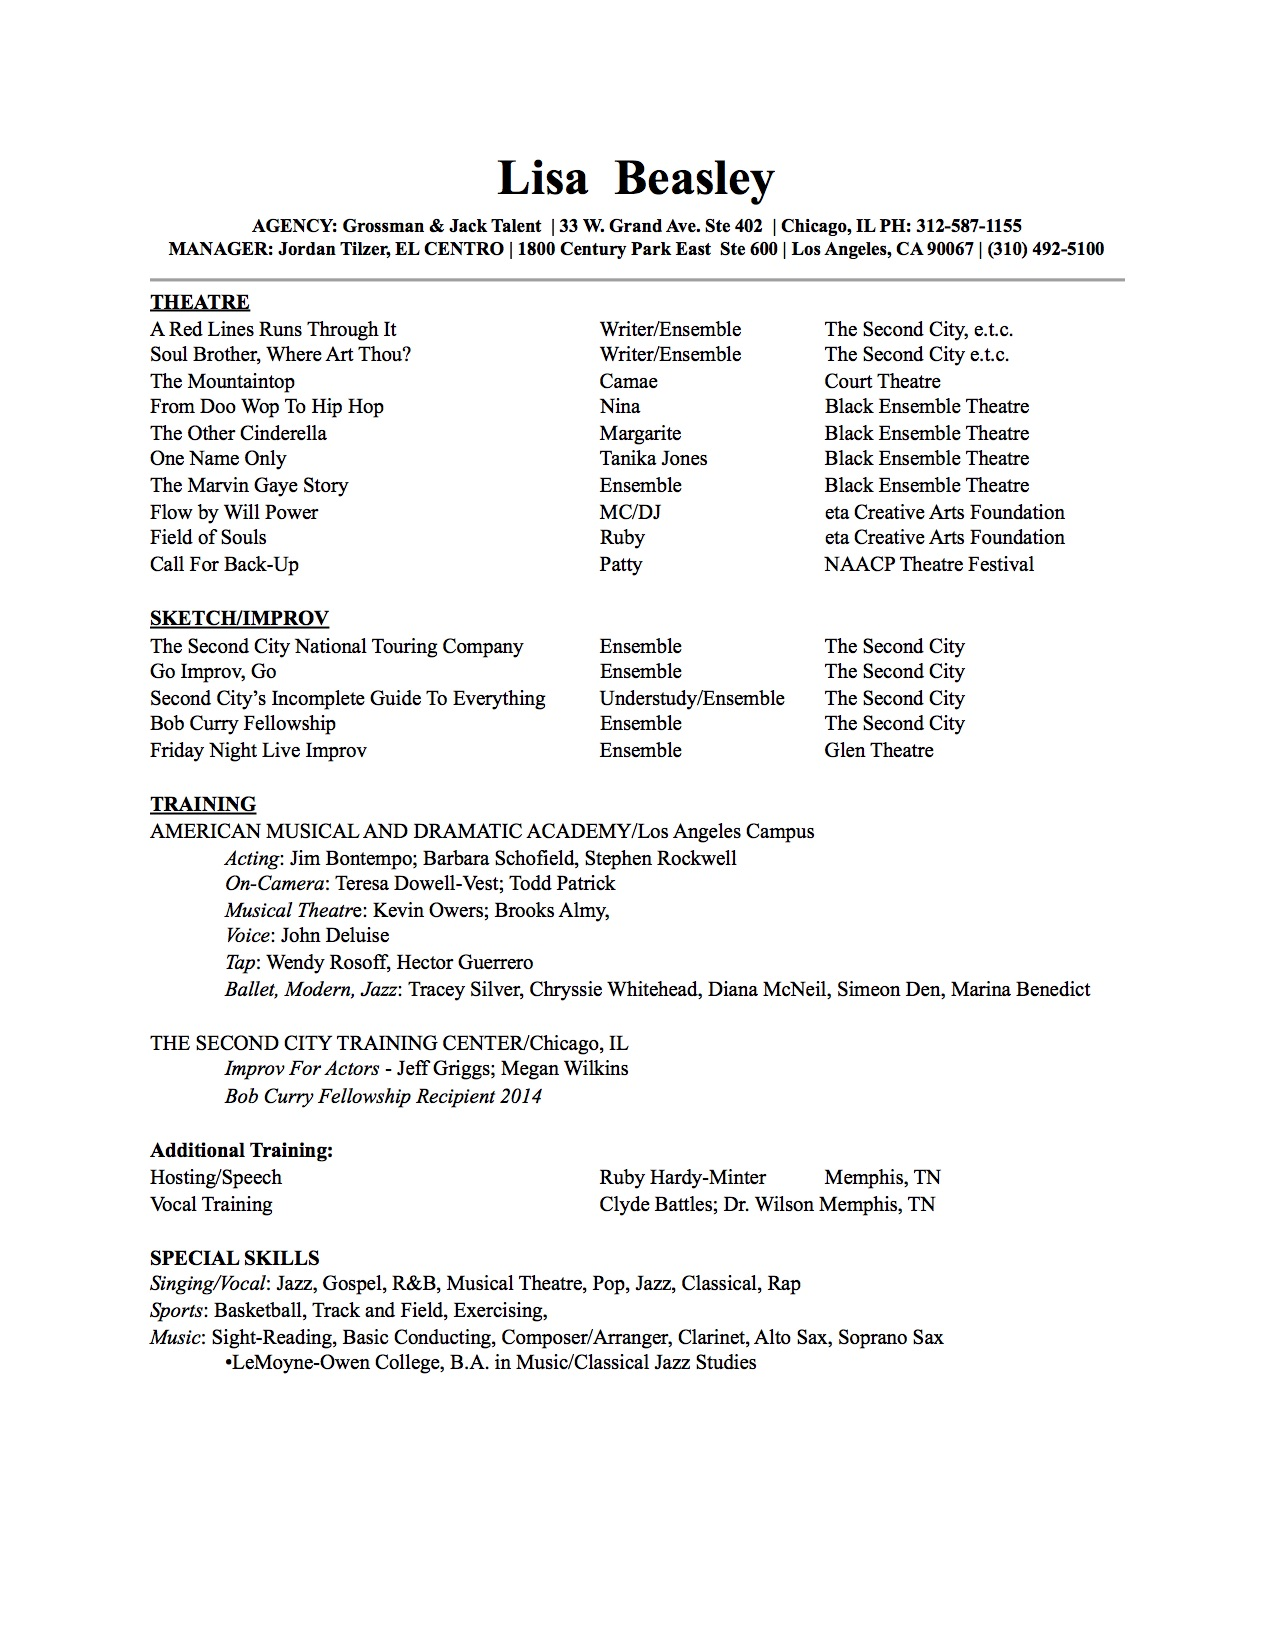 Resume Template Actor Resume No Experience Template Acting Resume  Acting Resume With No Experience